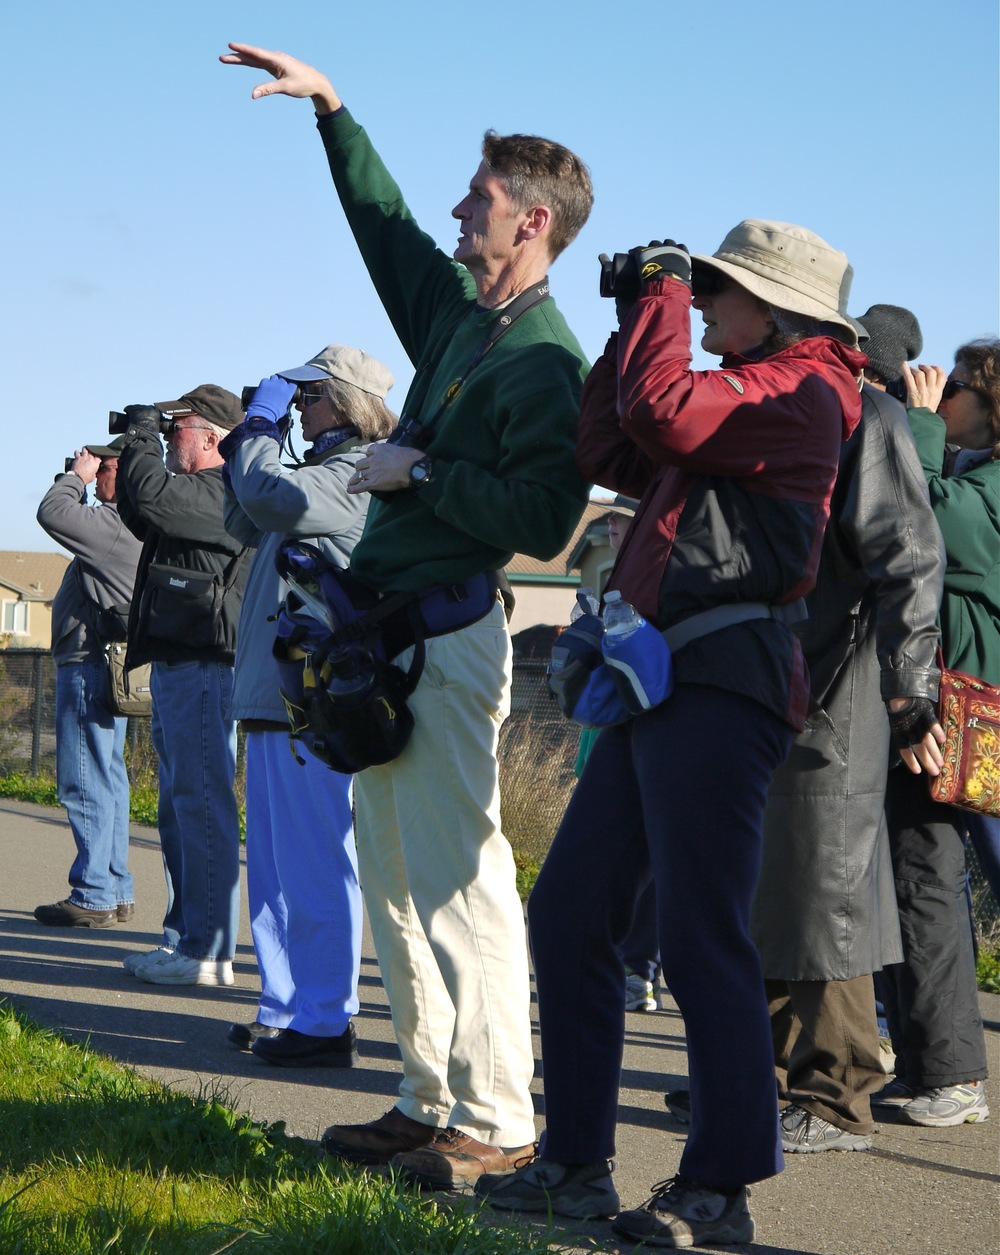 Mike Moran leads a Raptor Baseline expedition at Big Break Regional Shoreline.